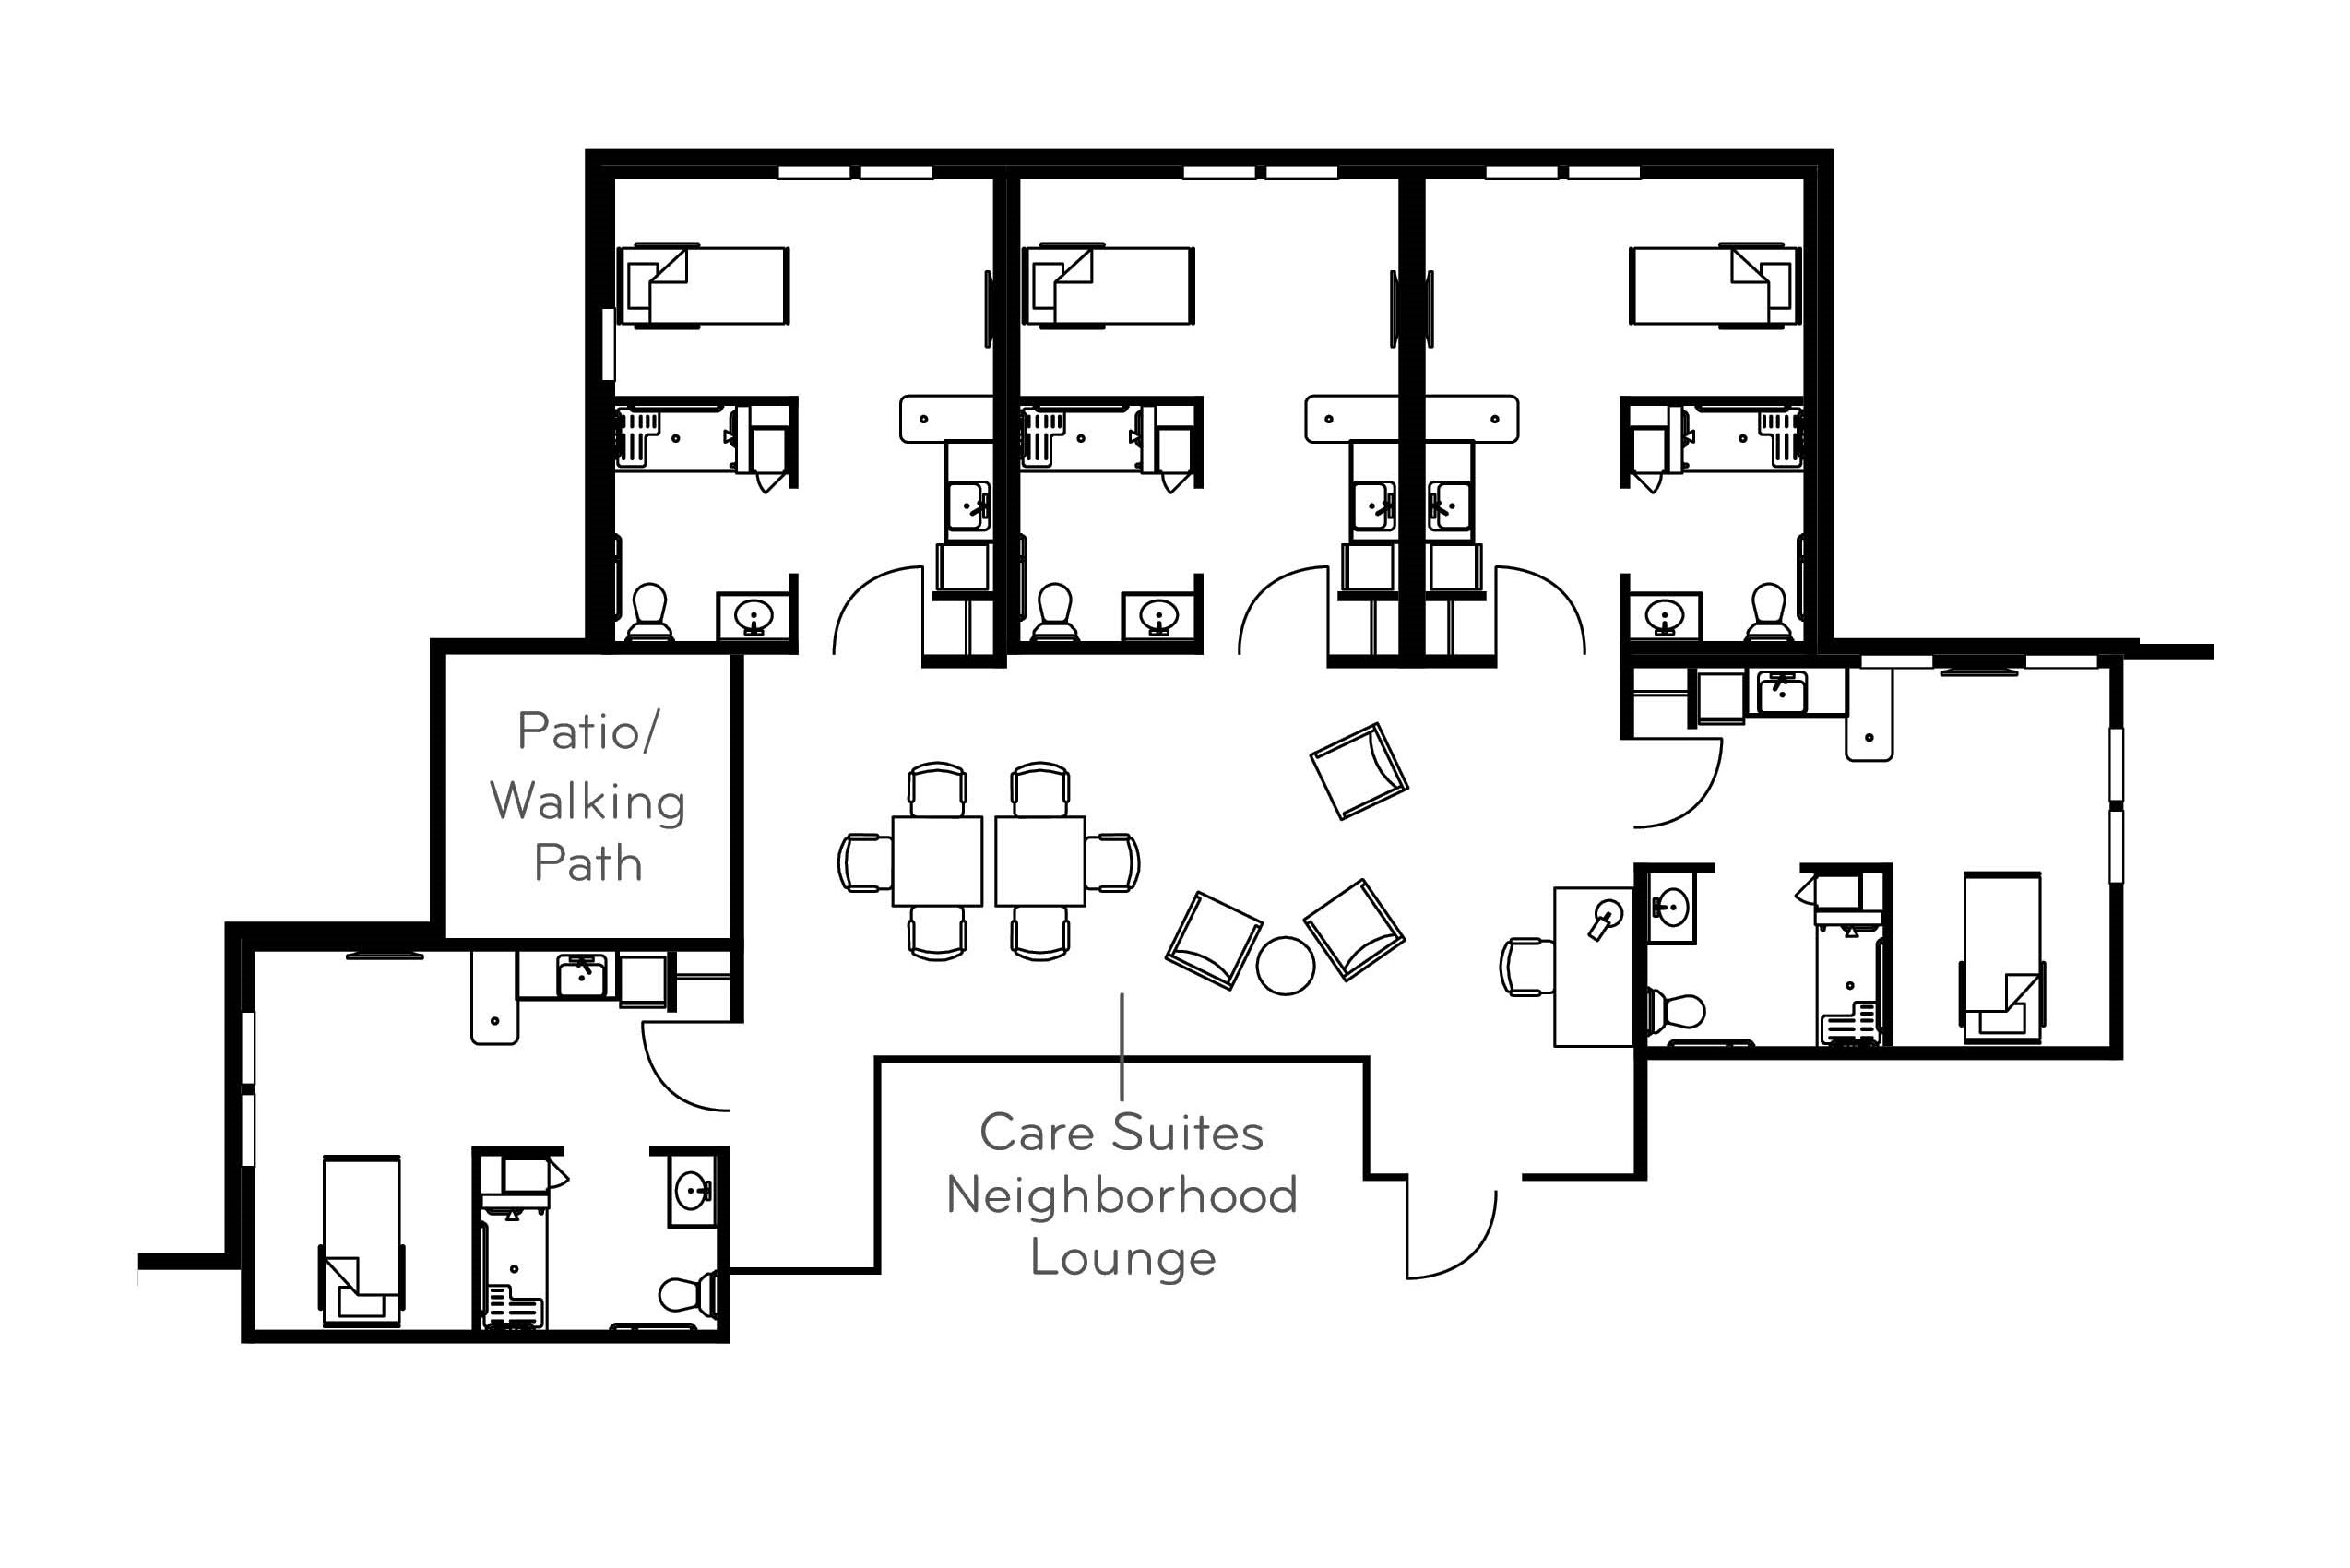 Care suites - Studio + kitchenette, 331 sq ft